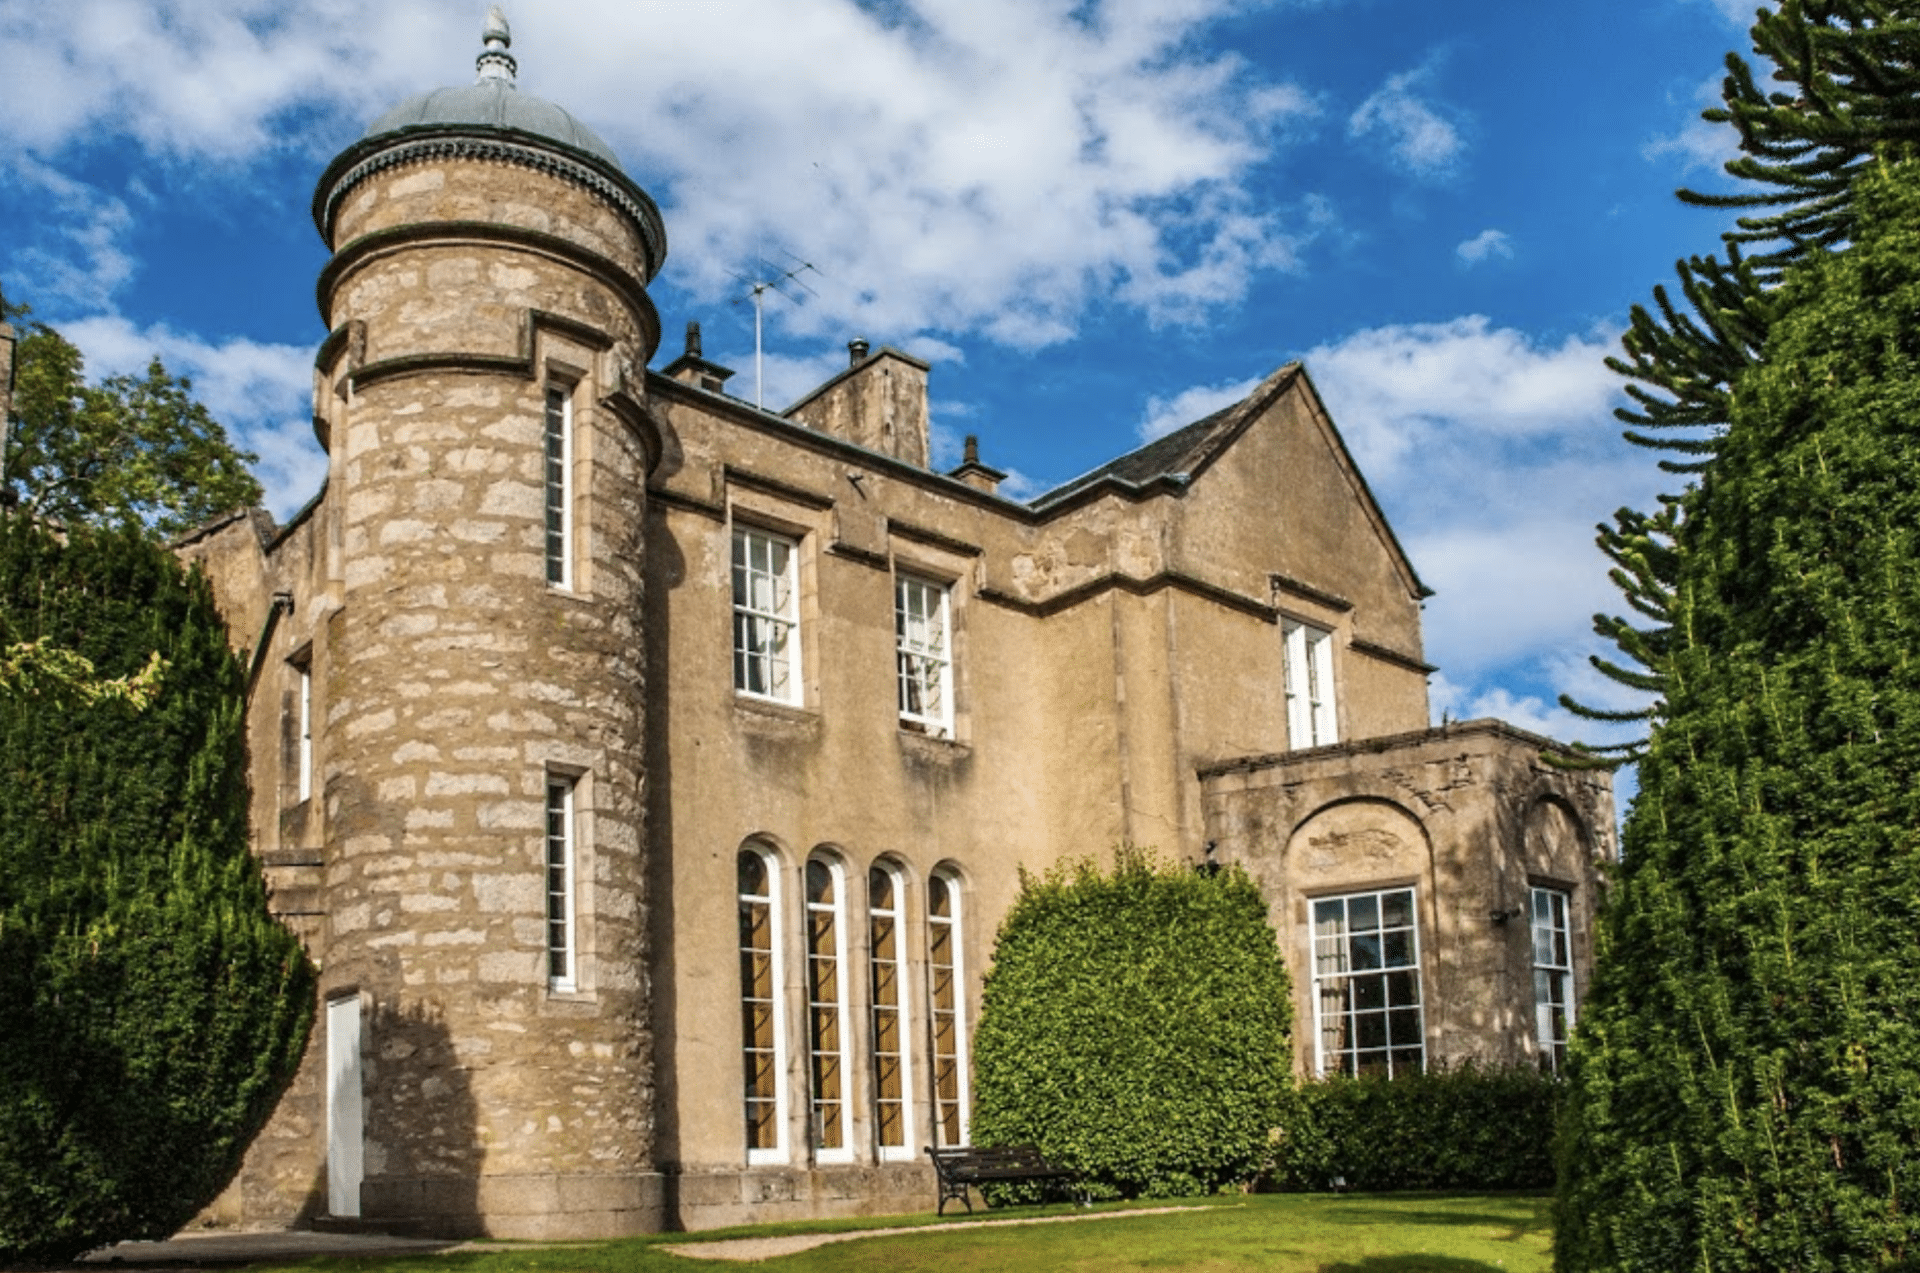 The Pittodrie House Hotel in Aberdeenshire - Michael Bremner